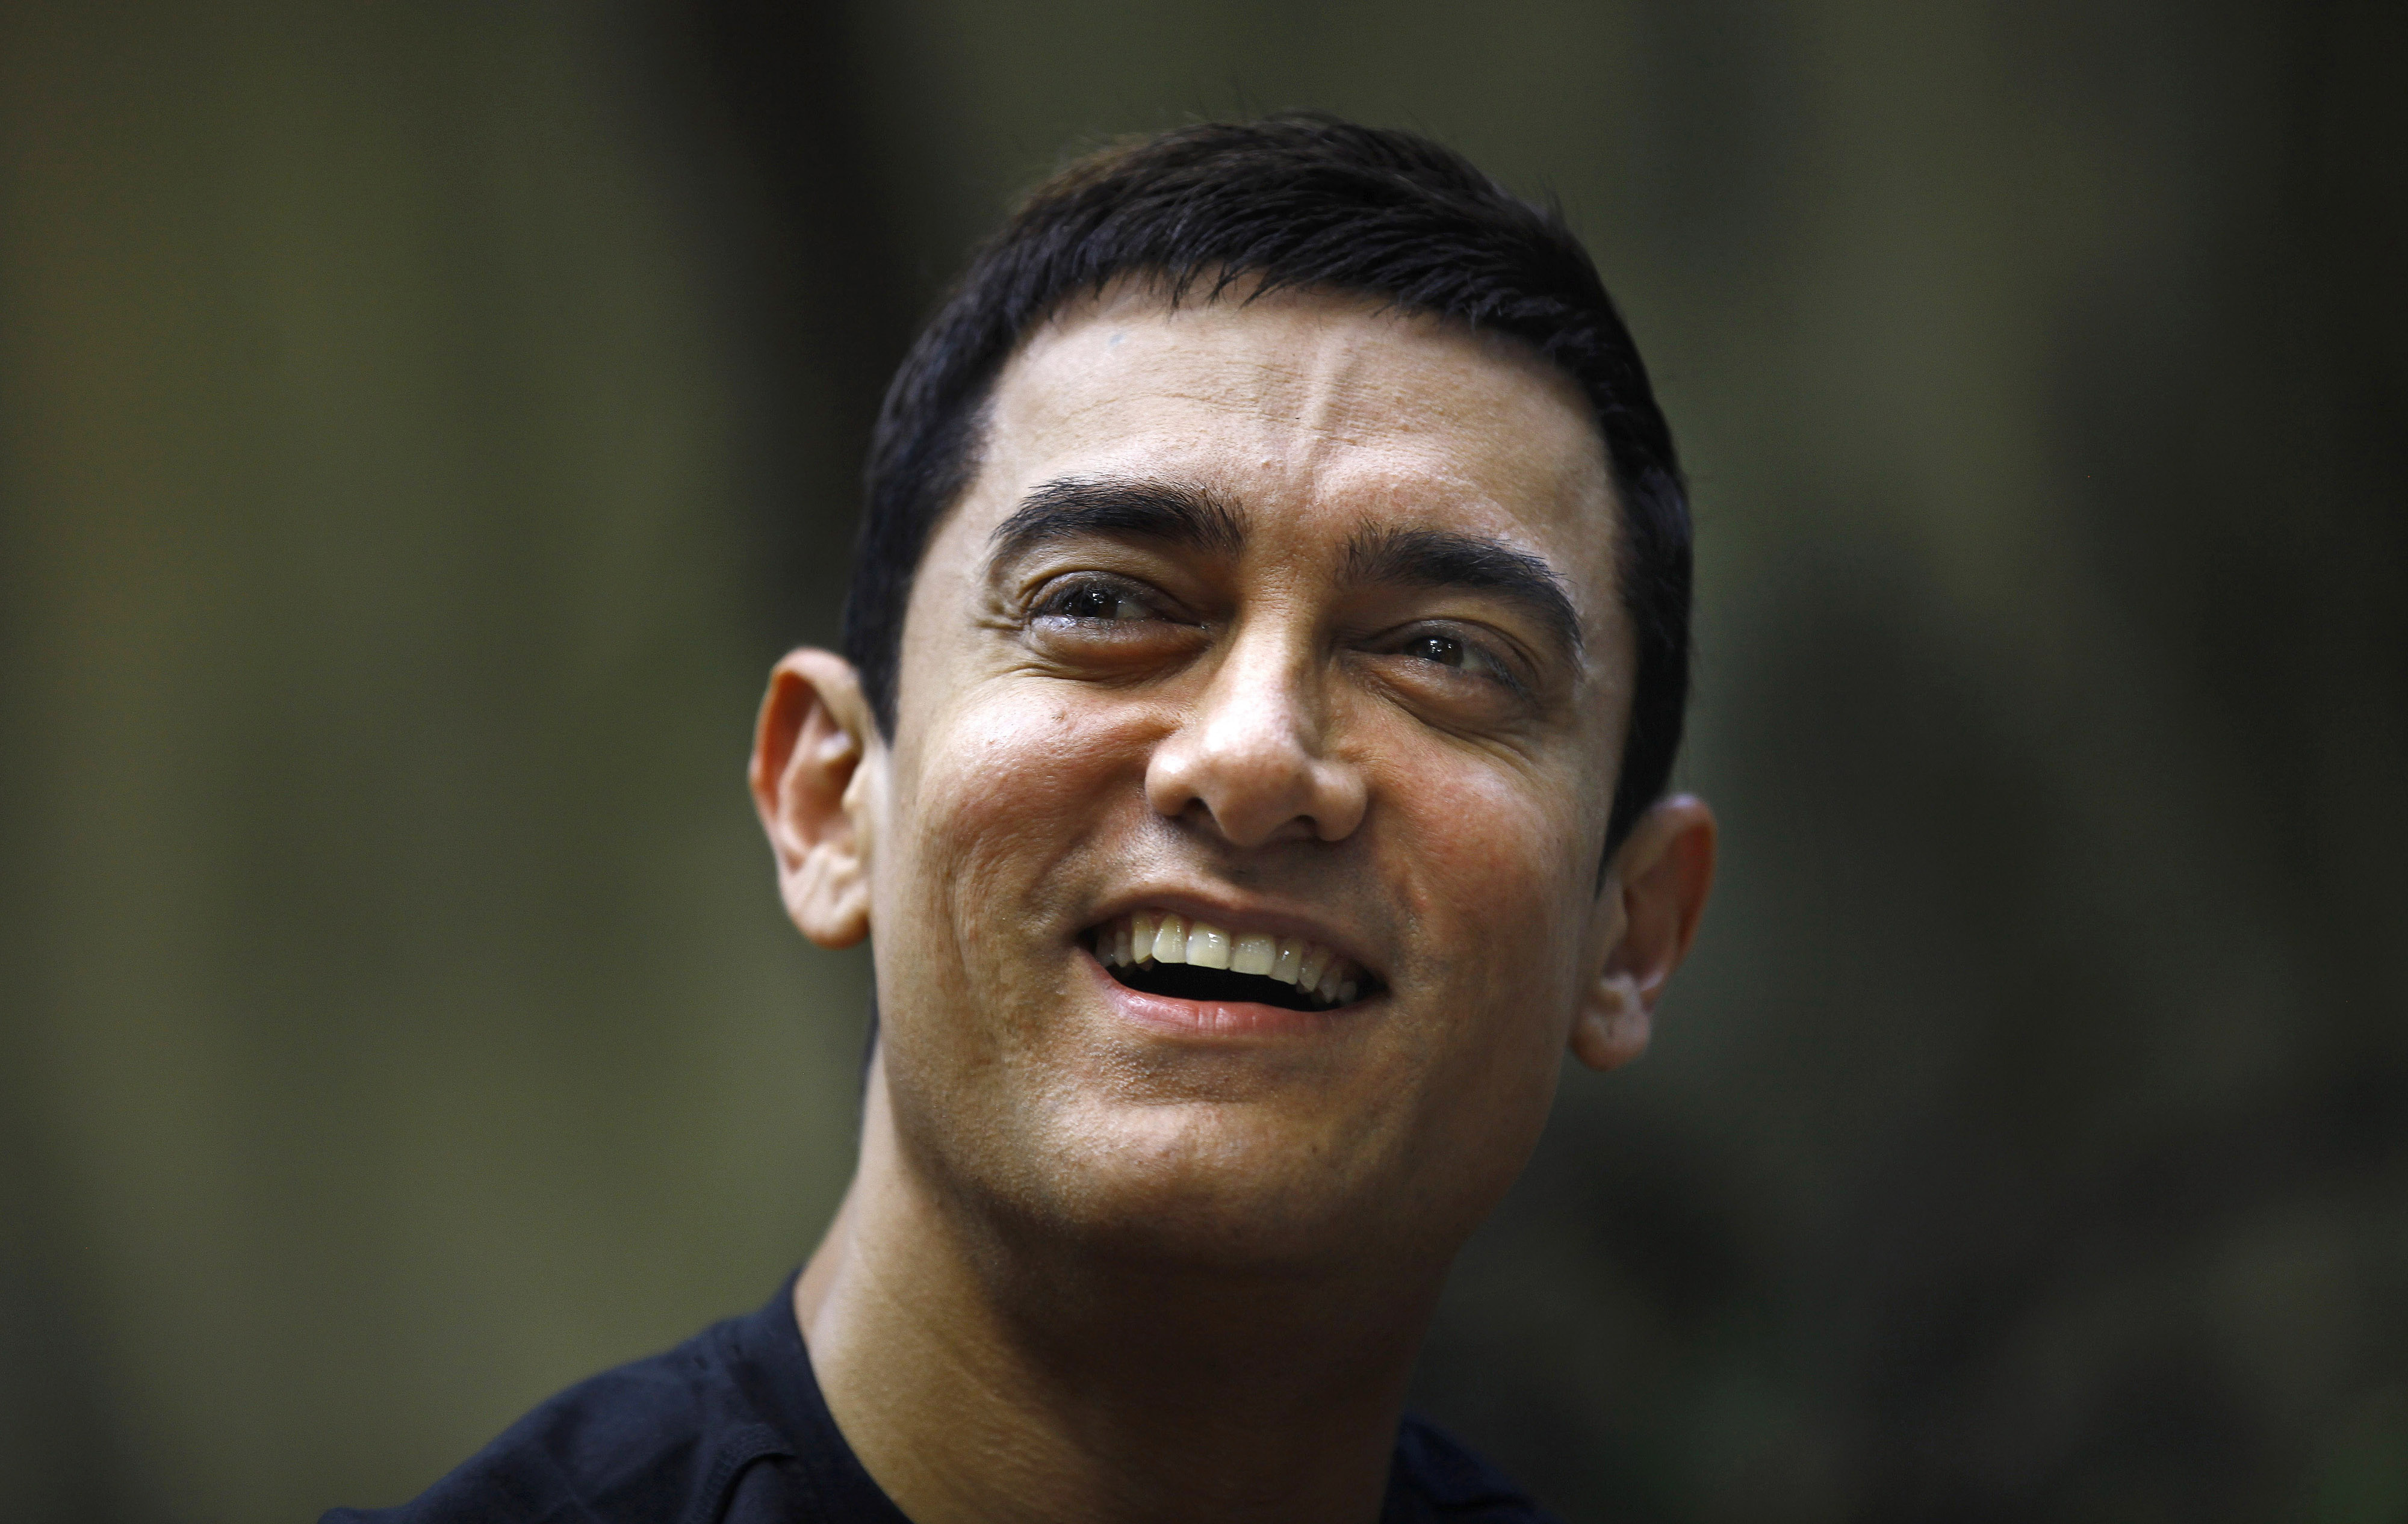 Aamir Khan rules Bollywood at 48